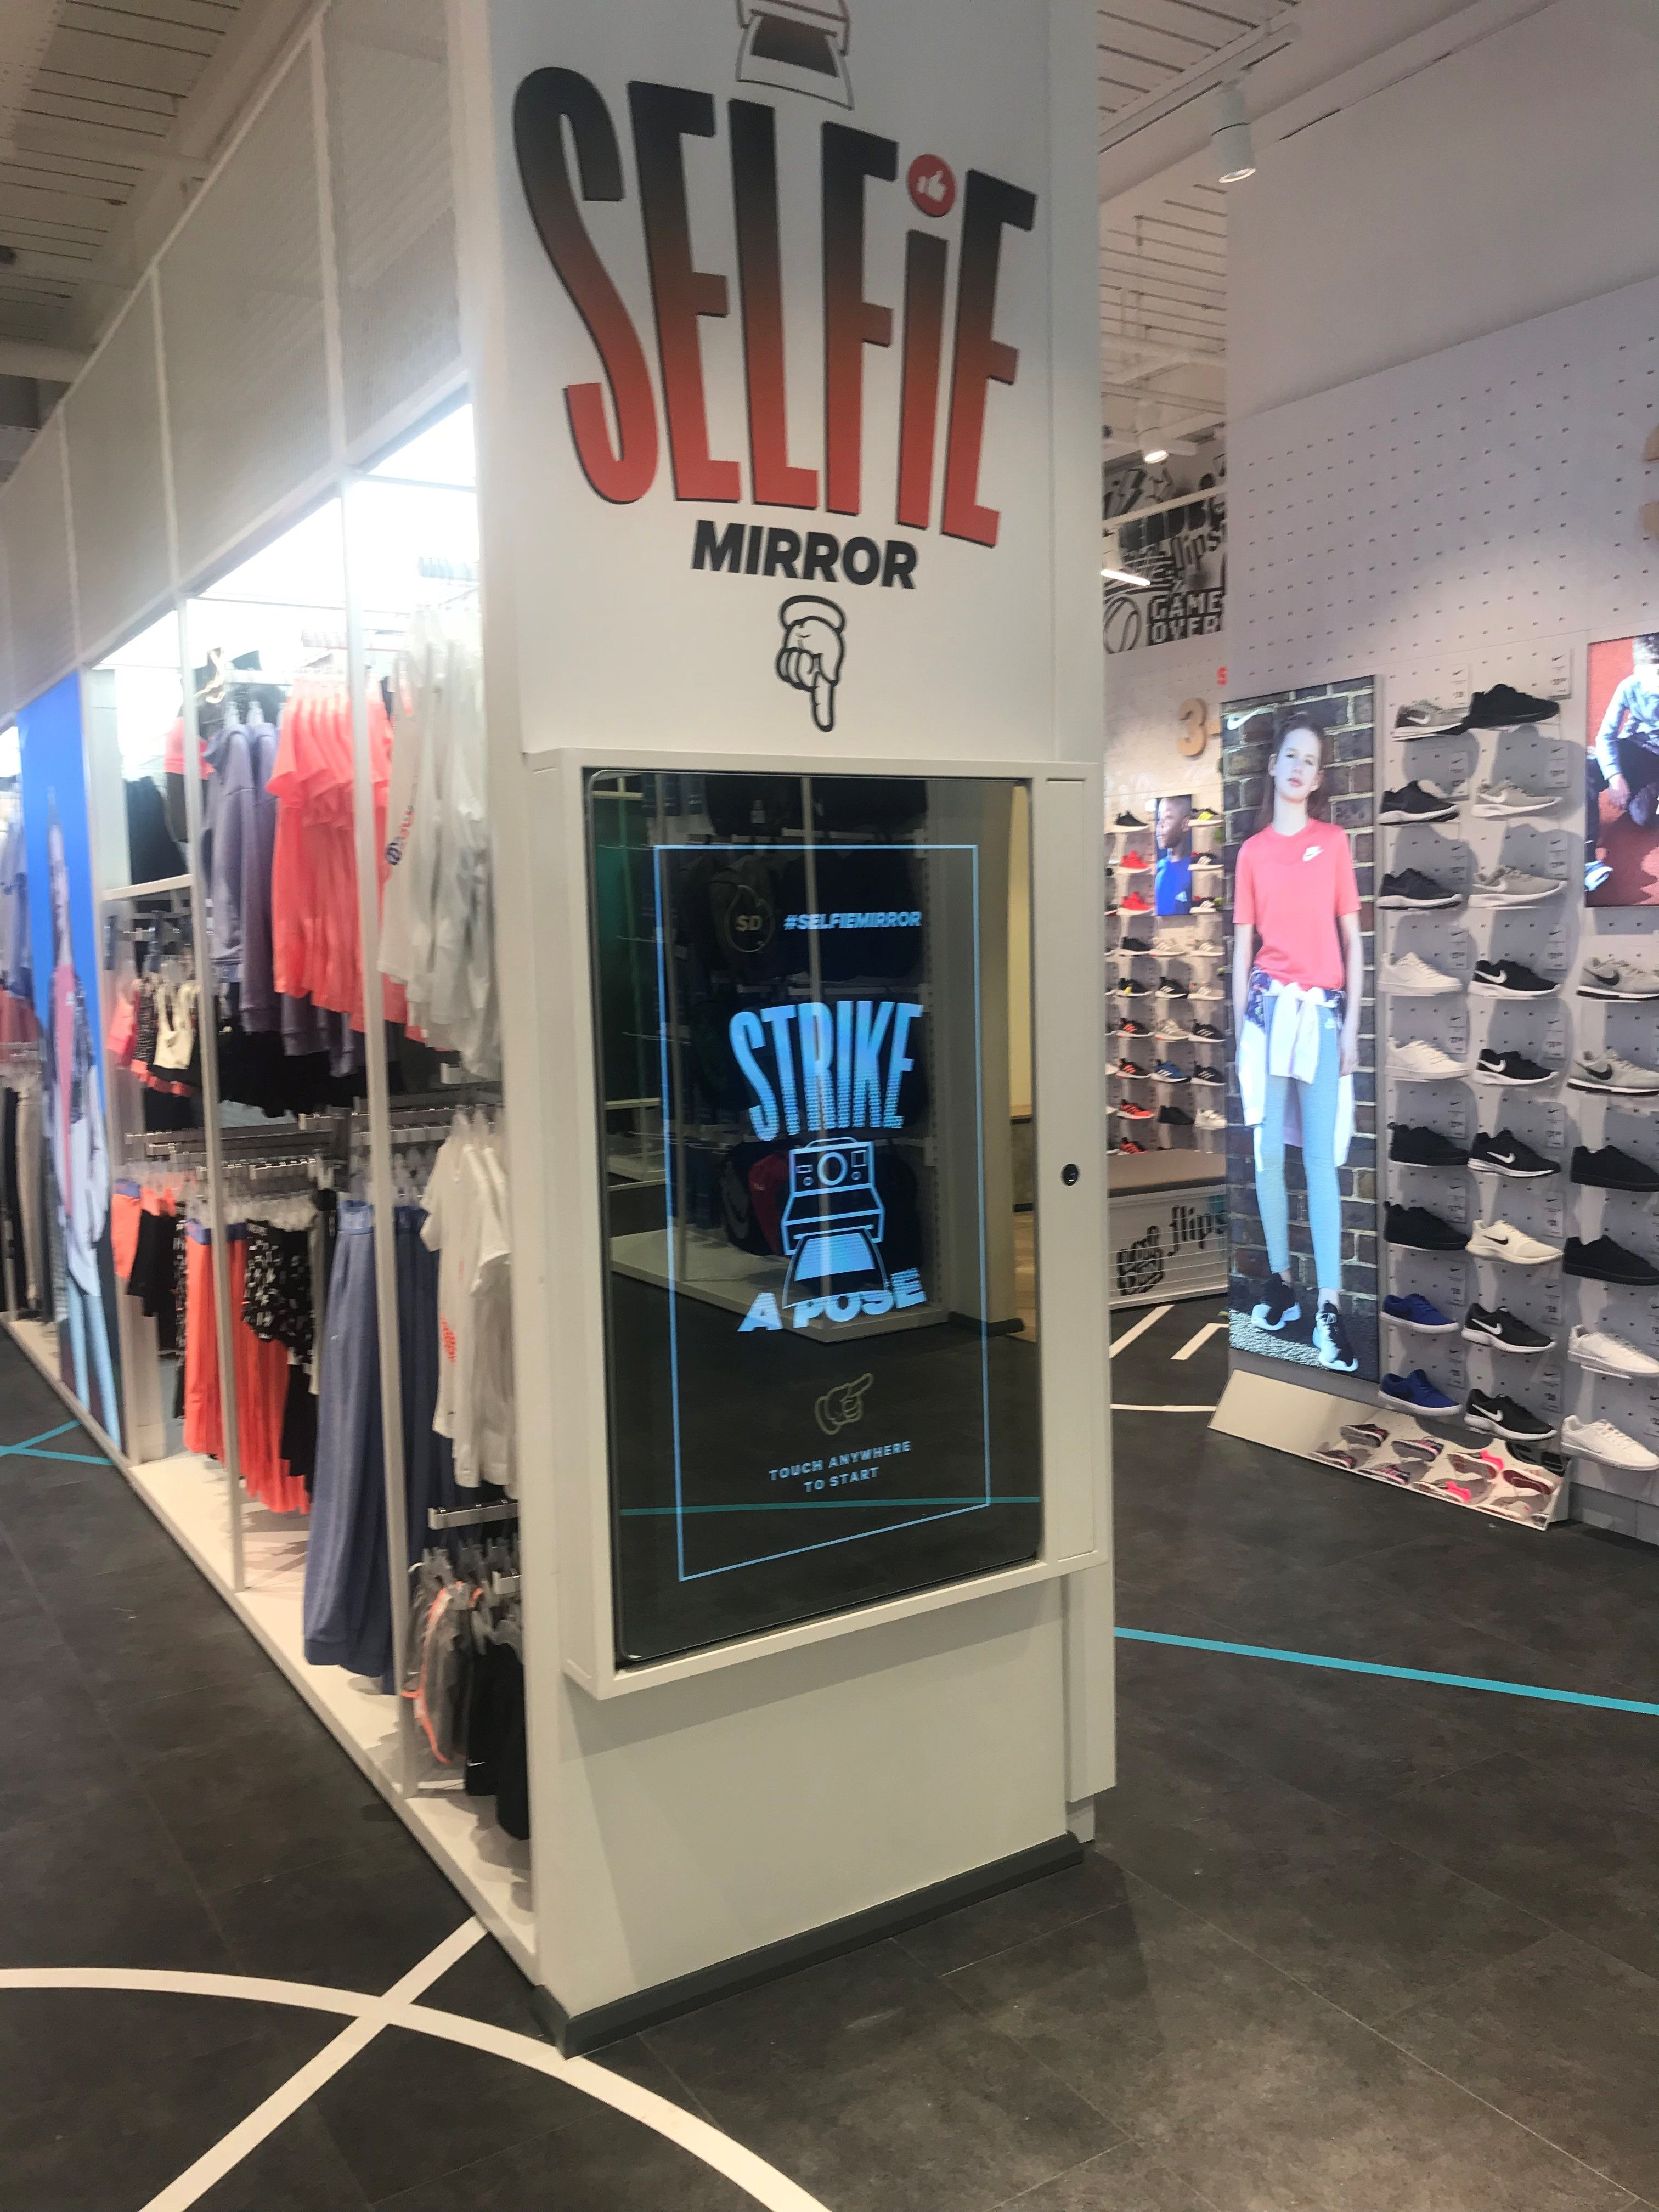 Sports Direct flagship store Lakeside Thurrock Sefie